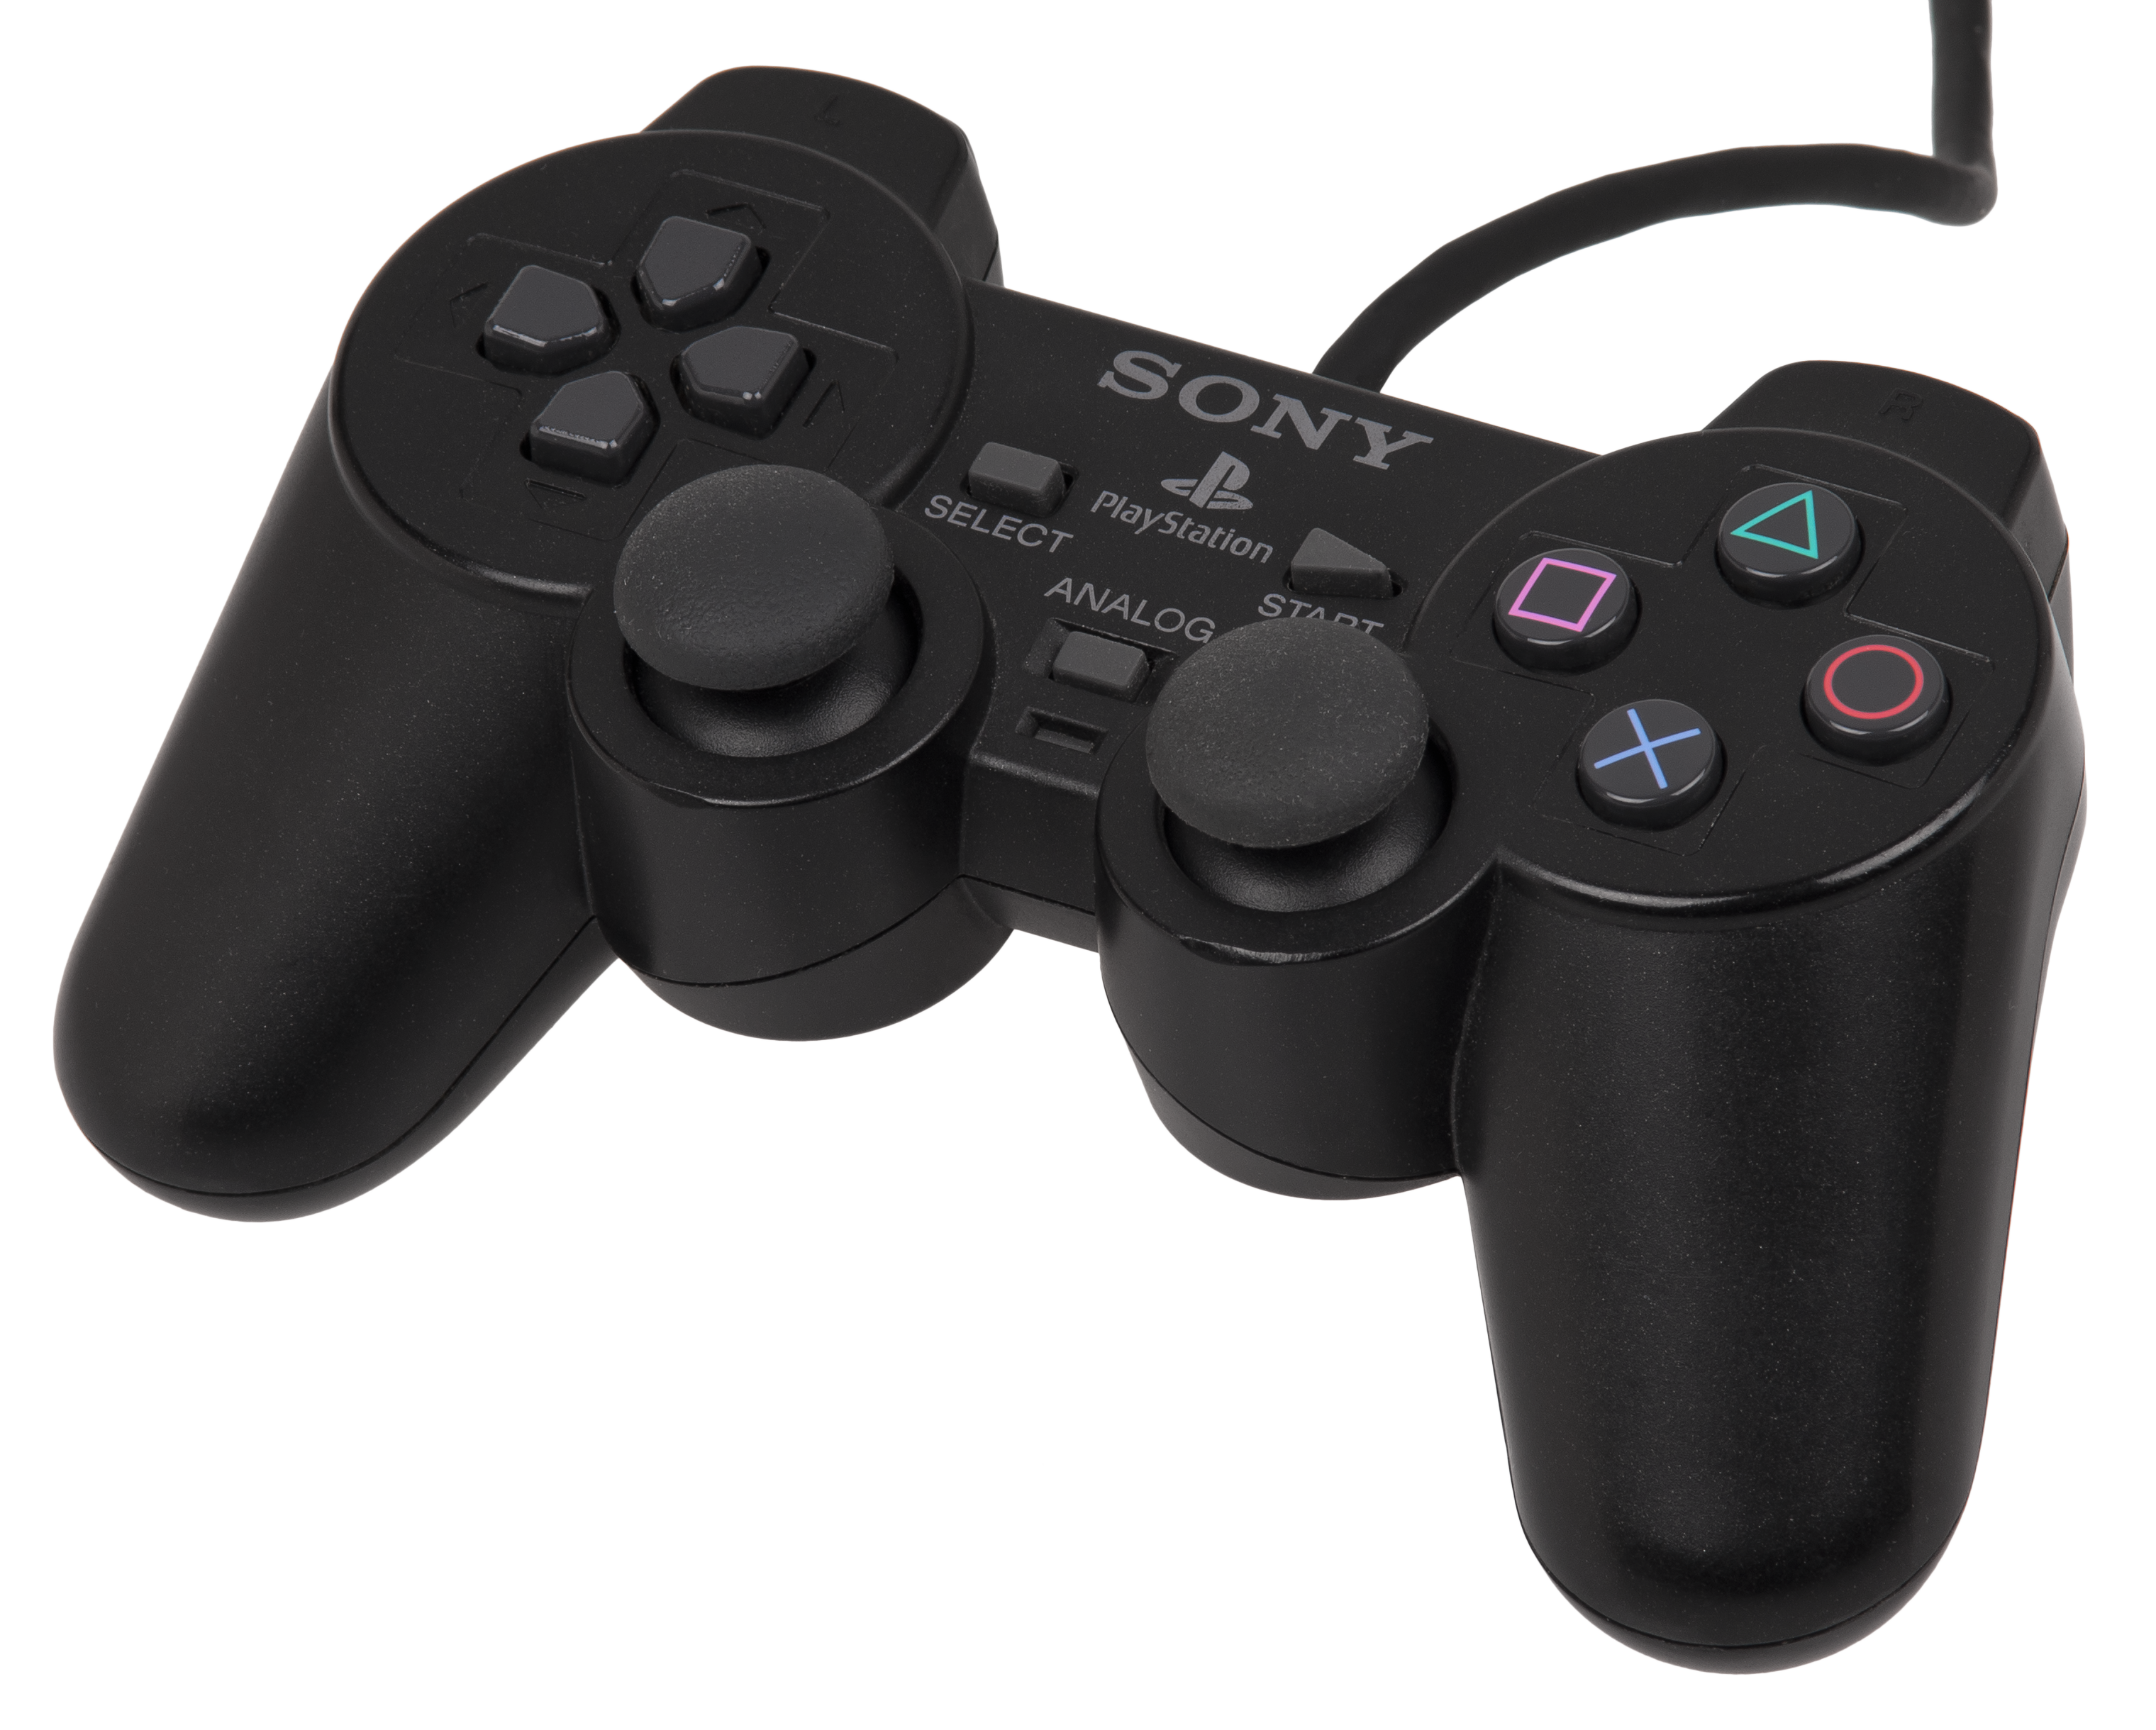 Sony Playstation gamepad PNG